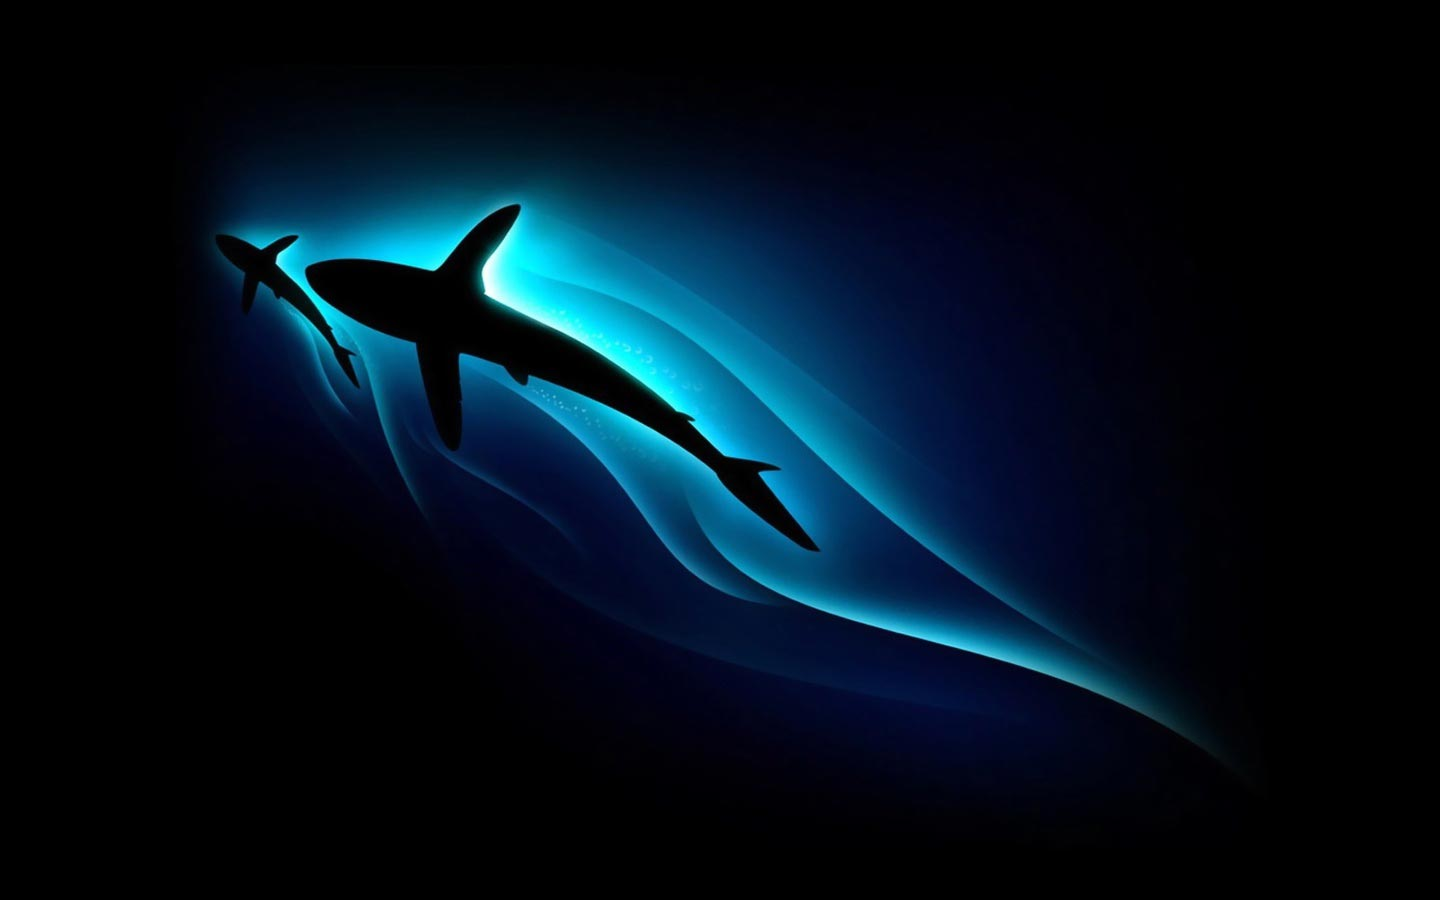 Desktop Wallpaper Gallery Windows Shark Pc Background